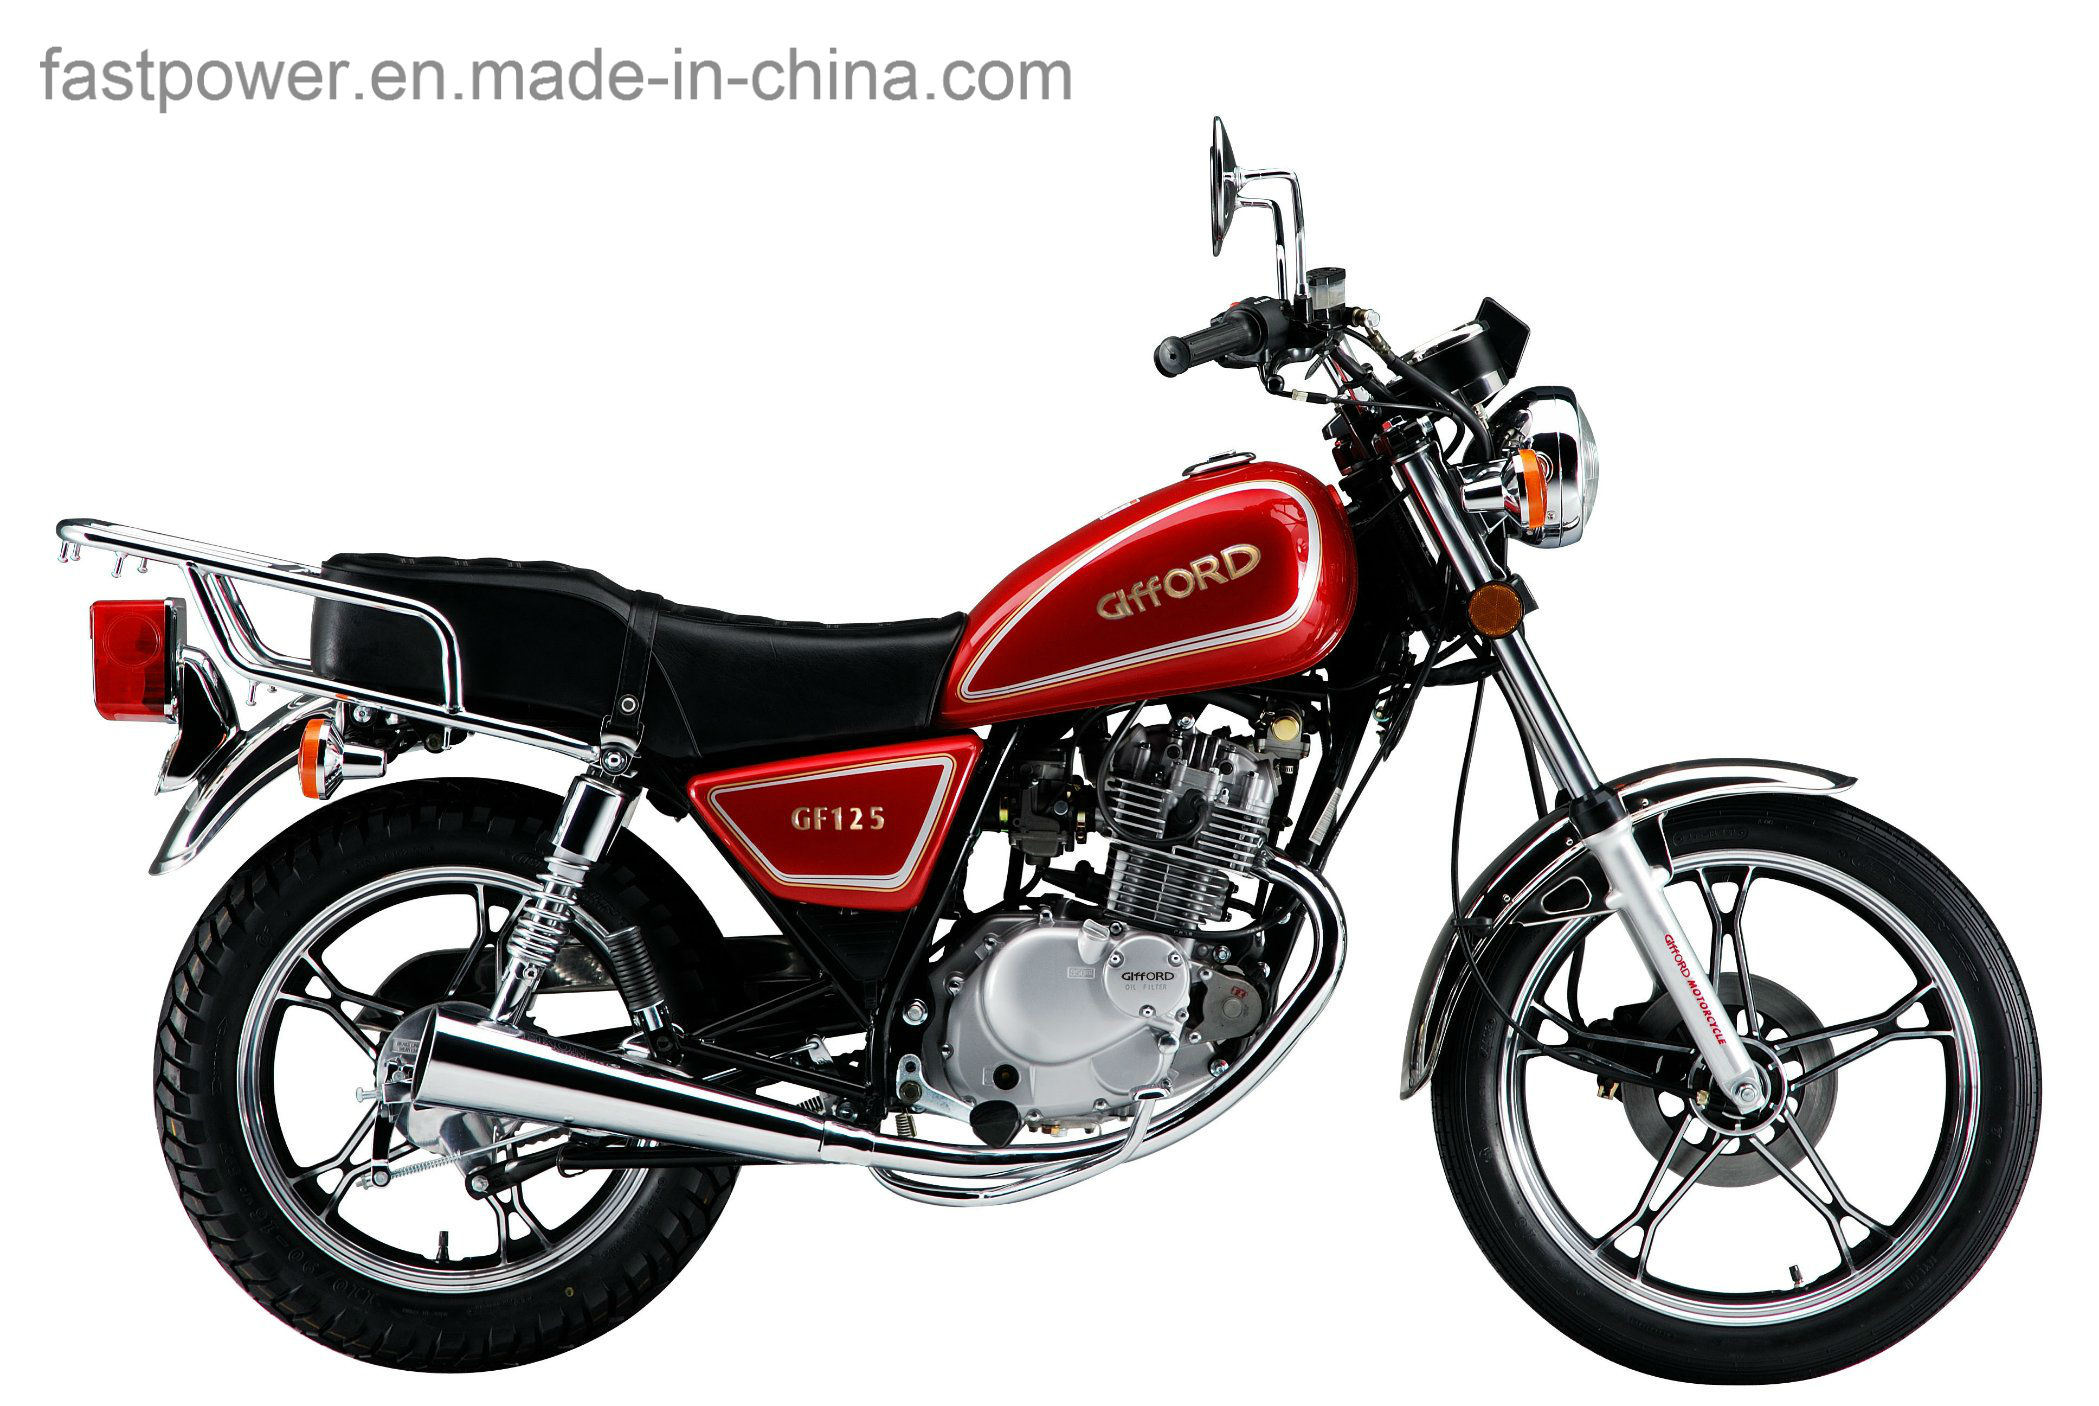 Gn125 150 Motorcycle Cheap Price